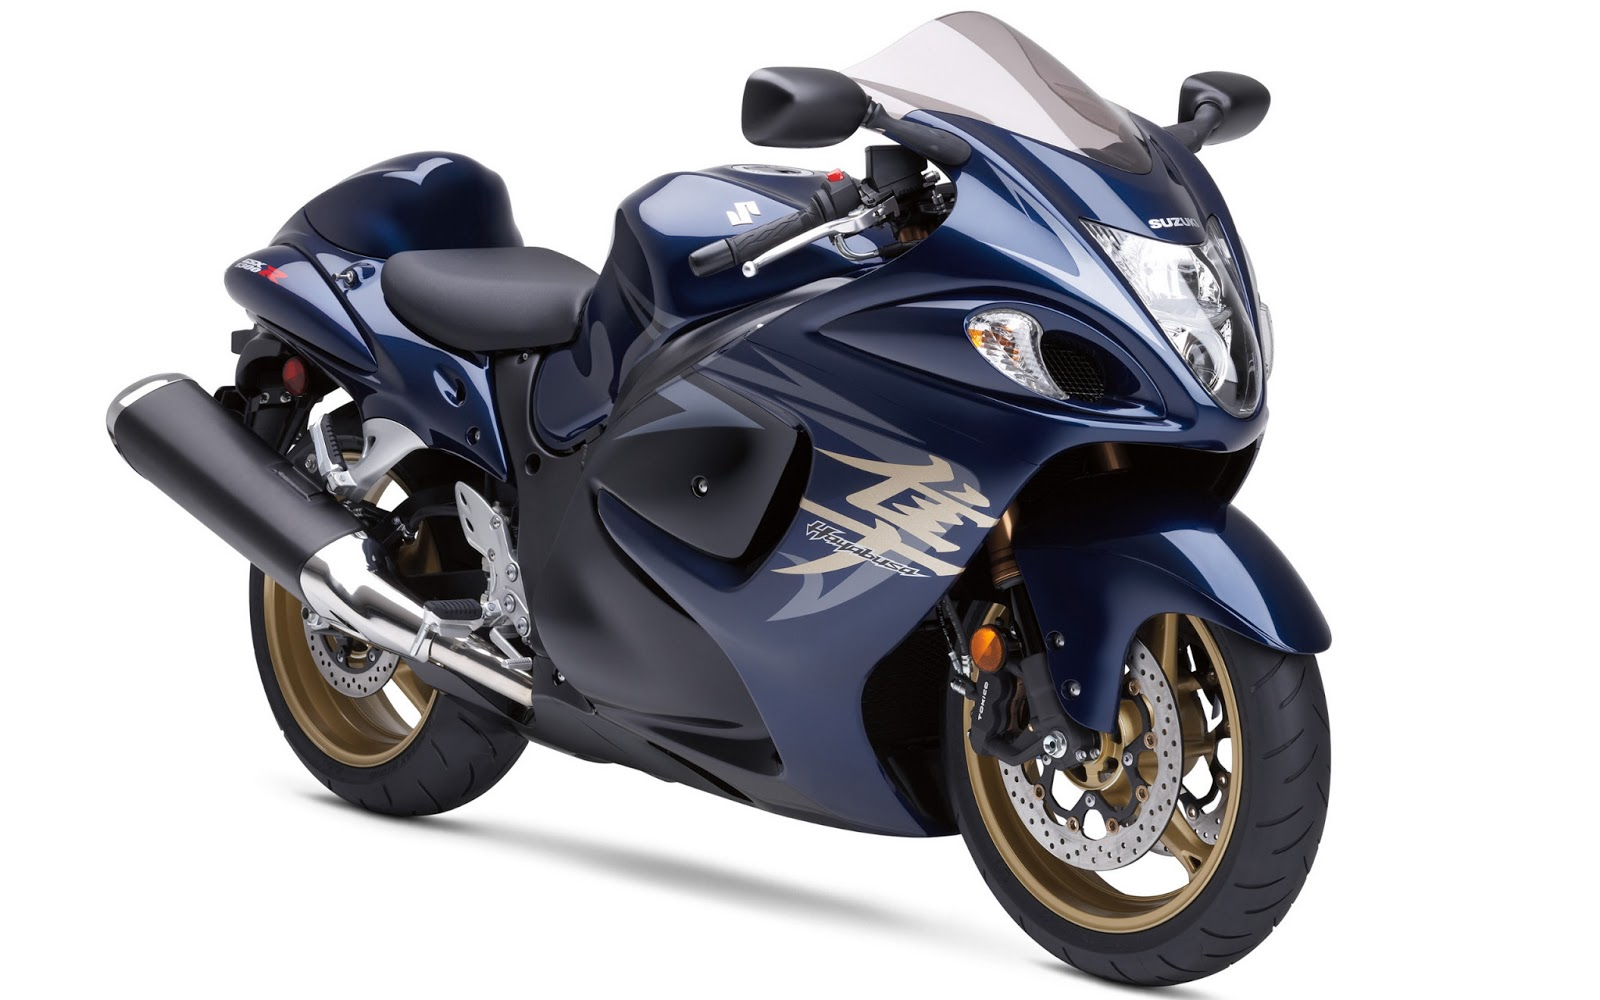 Top 25 Most Beautiful And Dashing Suzuki Bike Wallpapers In HD